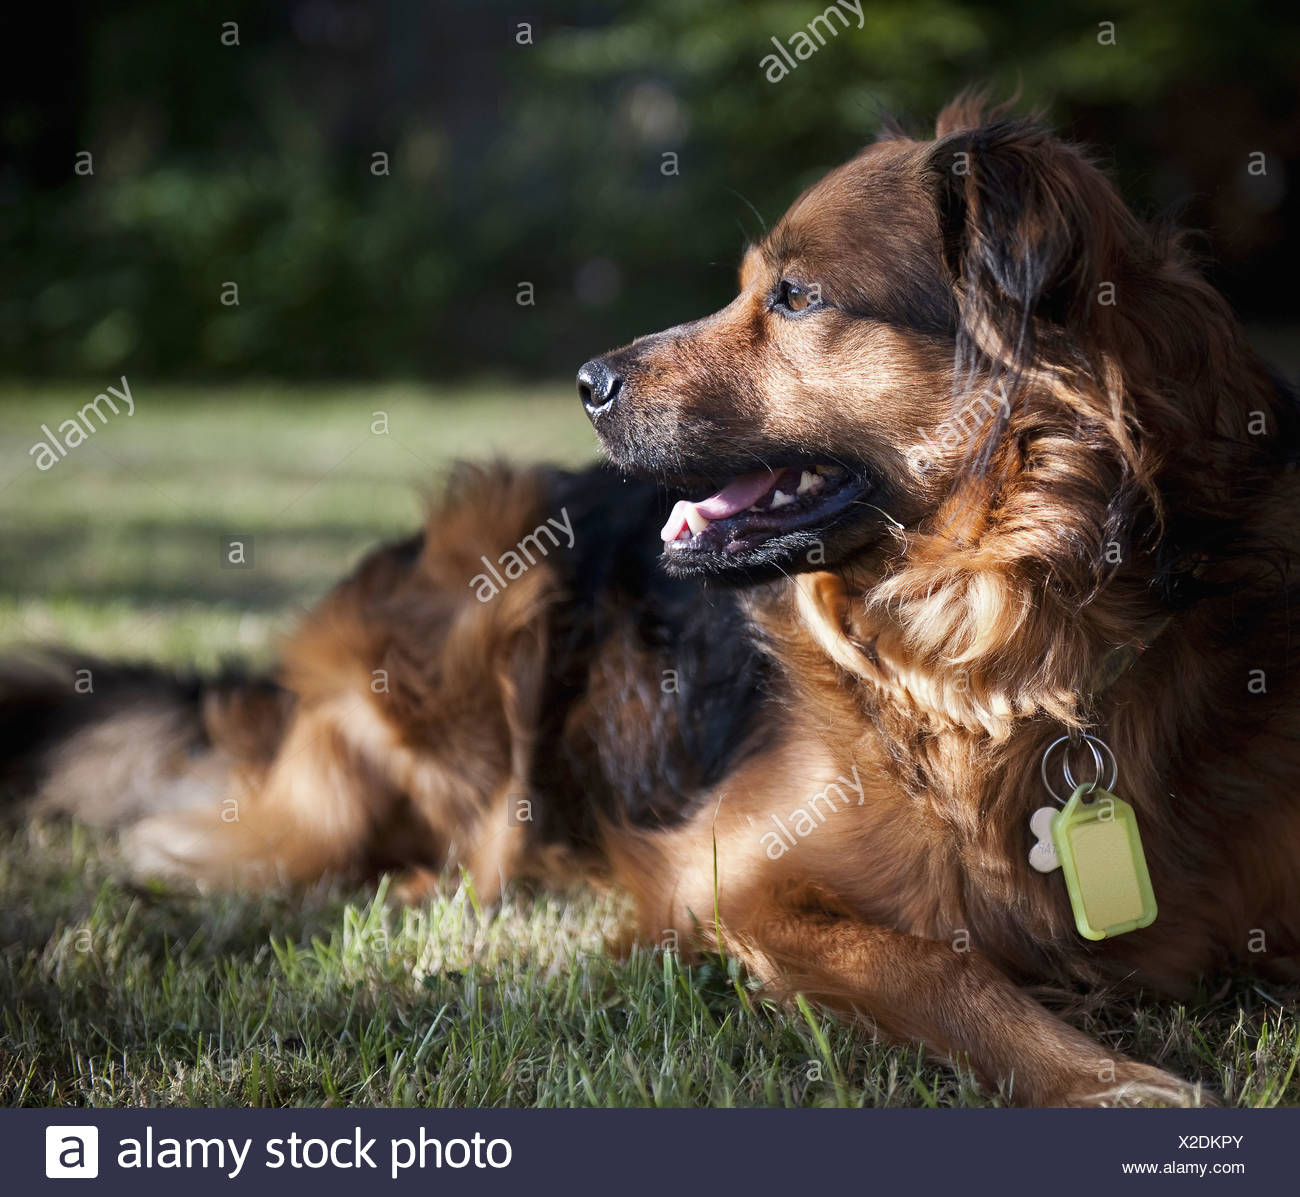 A large brown dog lying on the grass turning its head to look about A collar and identity tags England - Stock Image